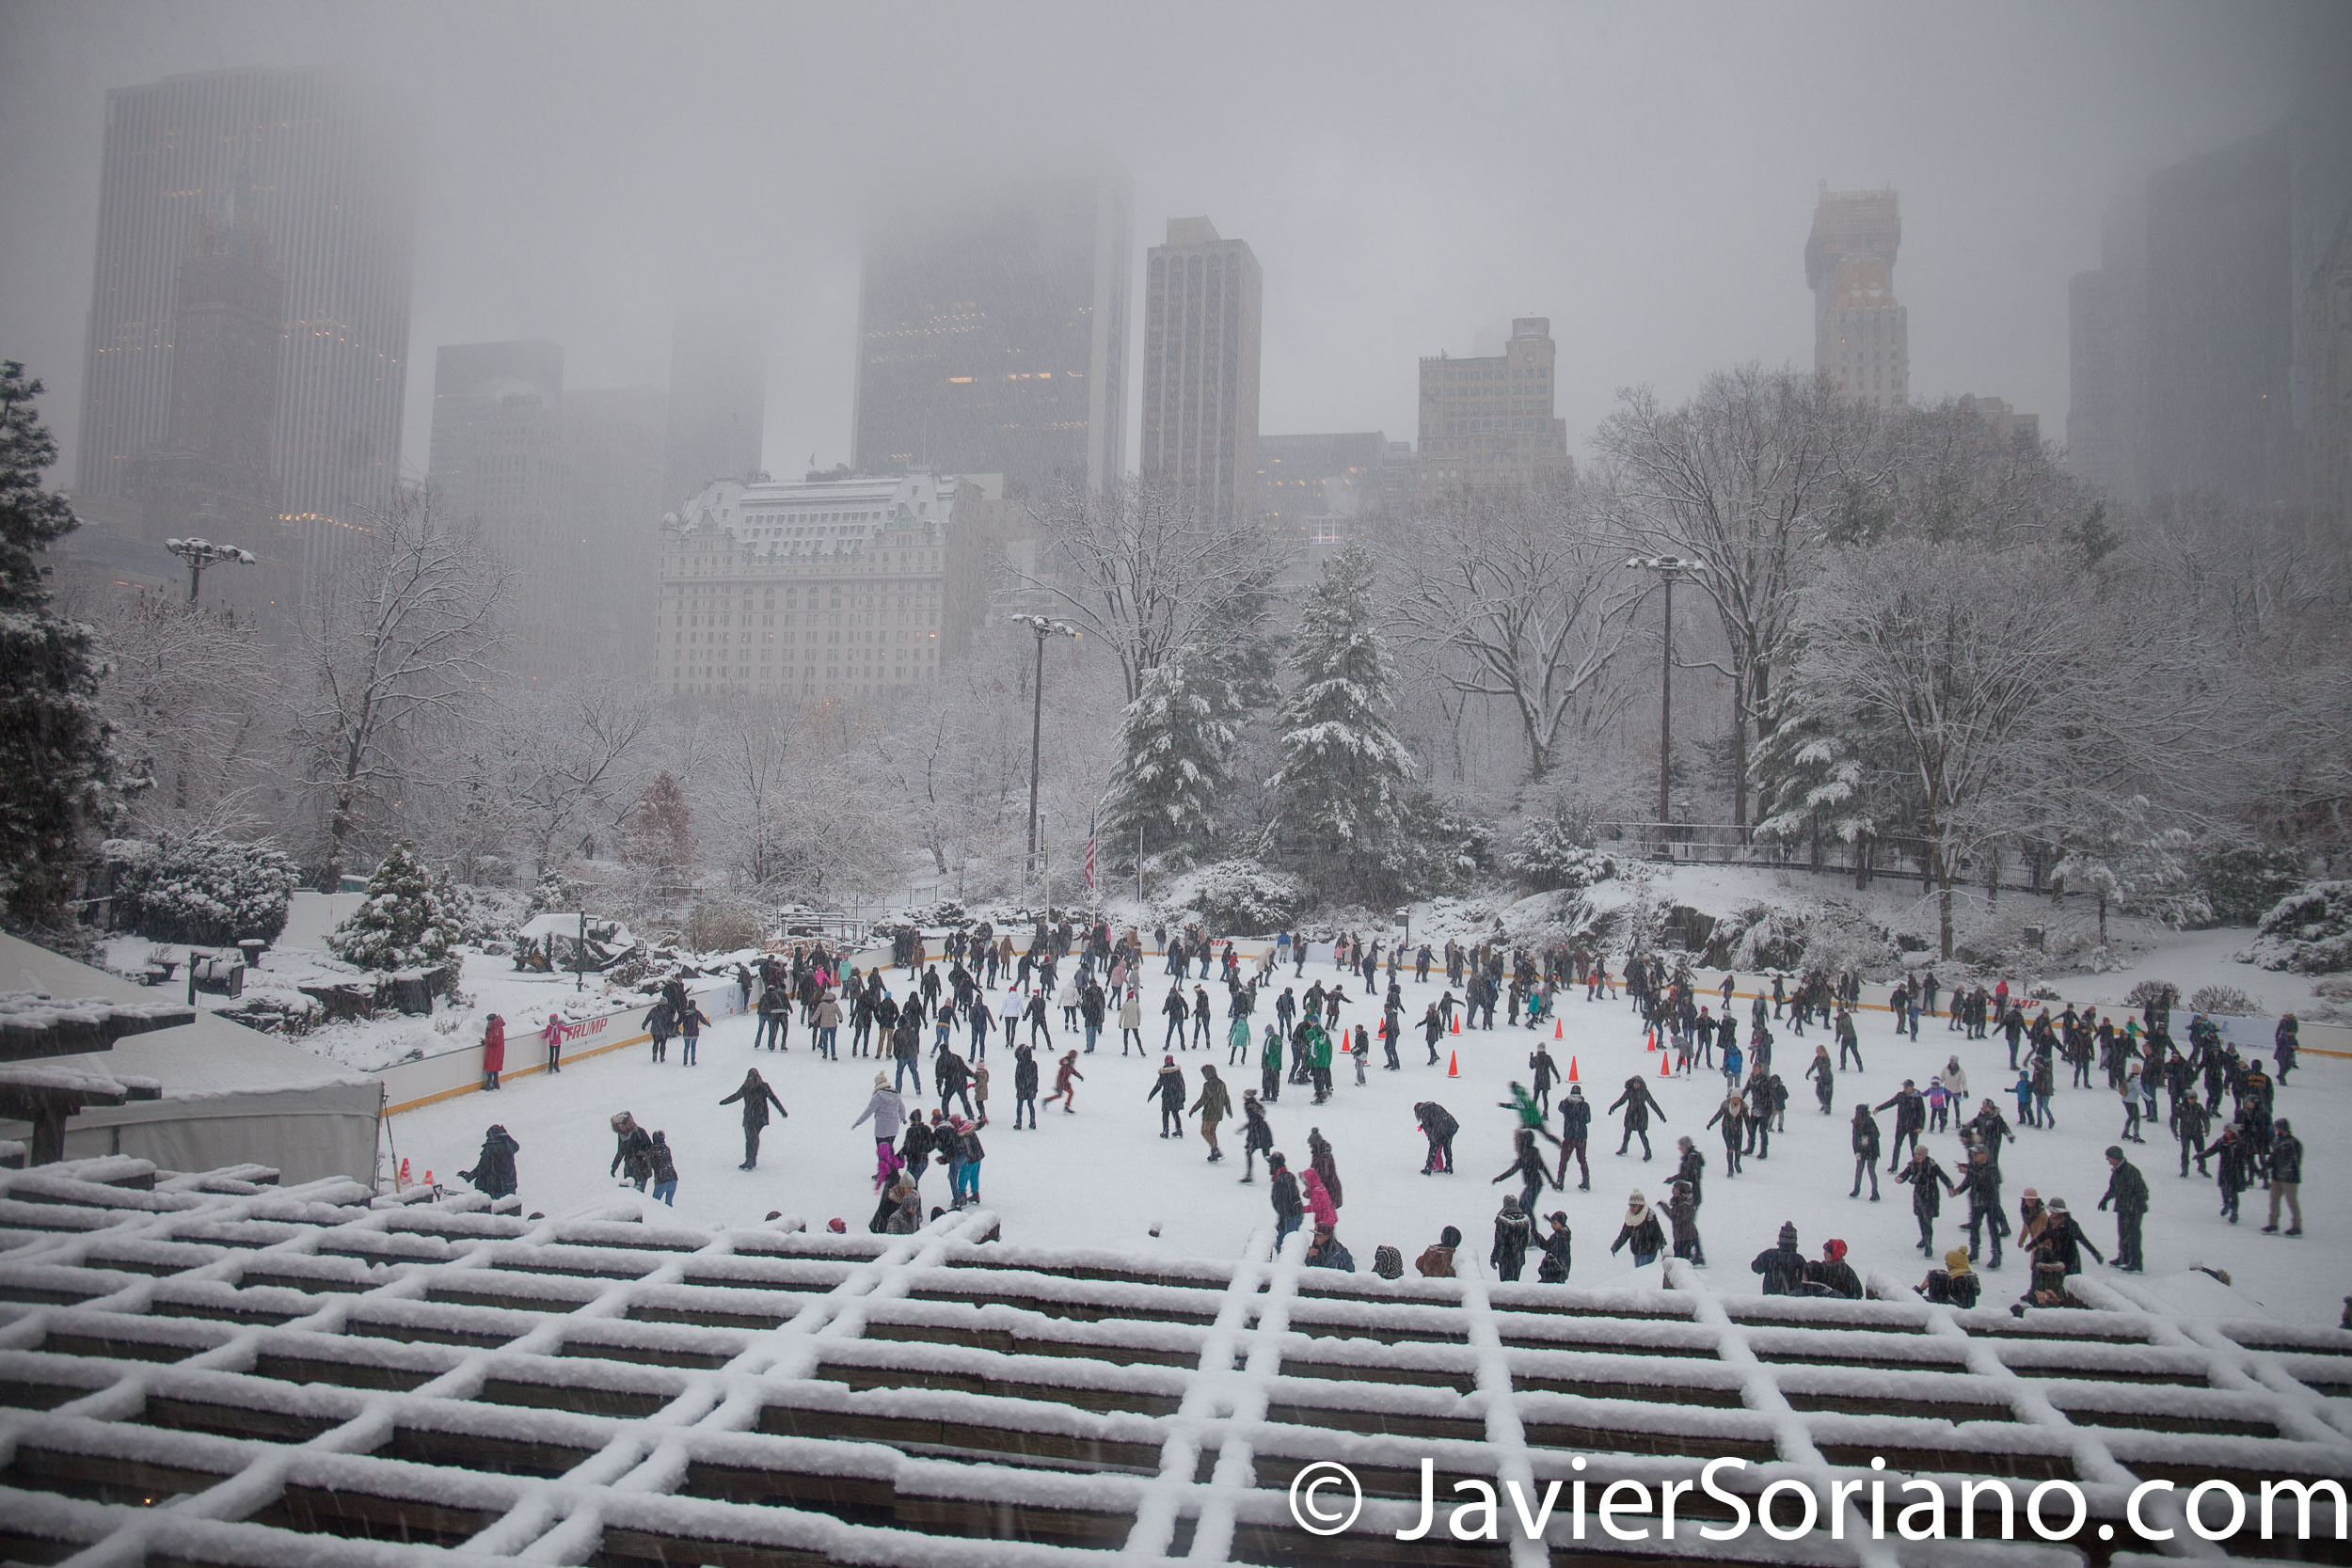 12/09/2017. NYC -Snowfall in Central Park. Nevada en el Parque Central de la Ciudad de Nueva York. People skating in the park. Gente patinando en el parque. Photo by Javier Soriano/www.JavierSoriano.com